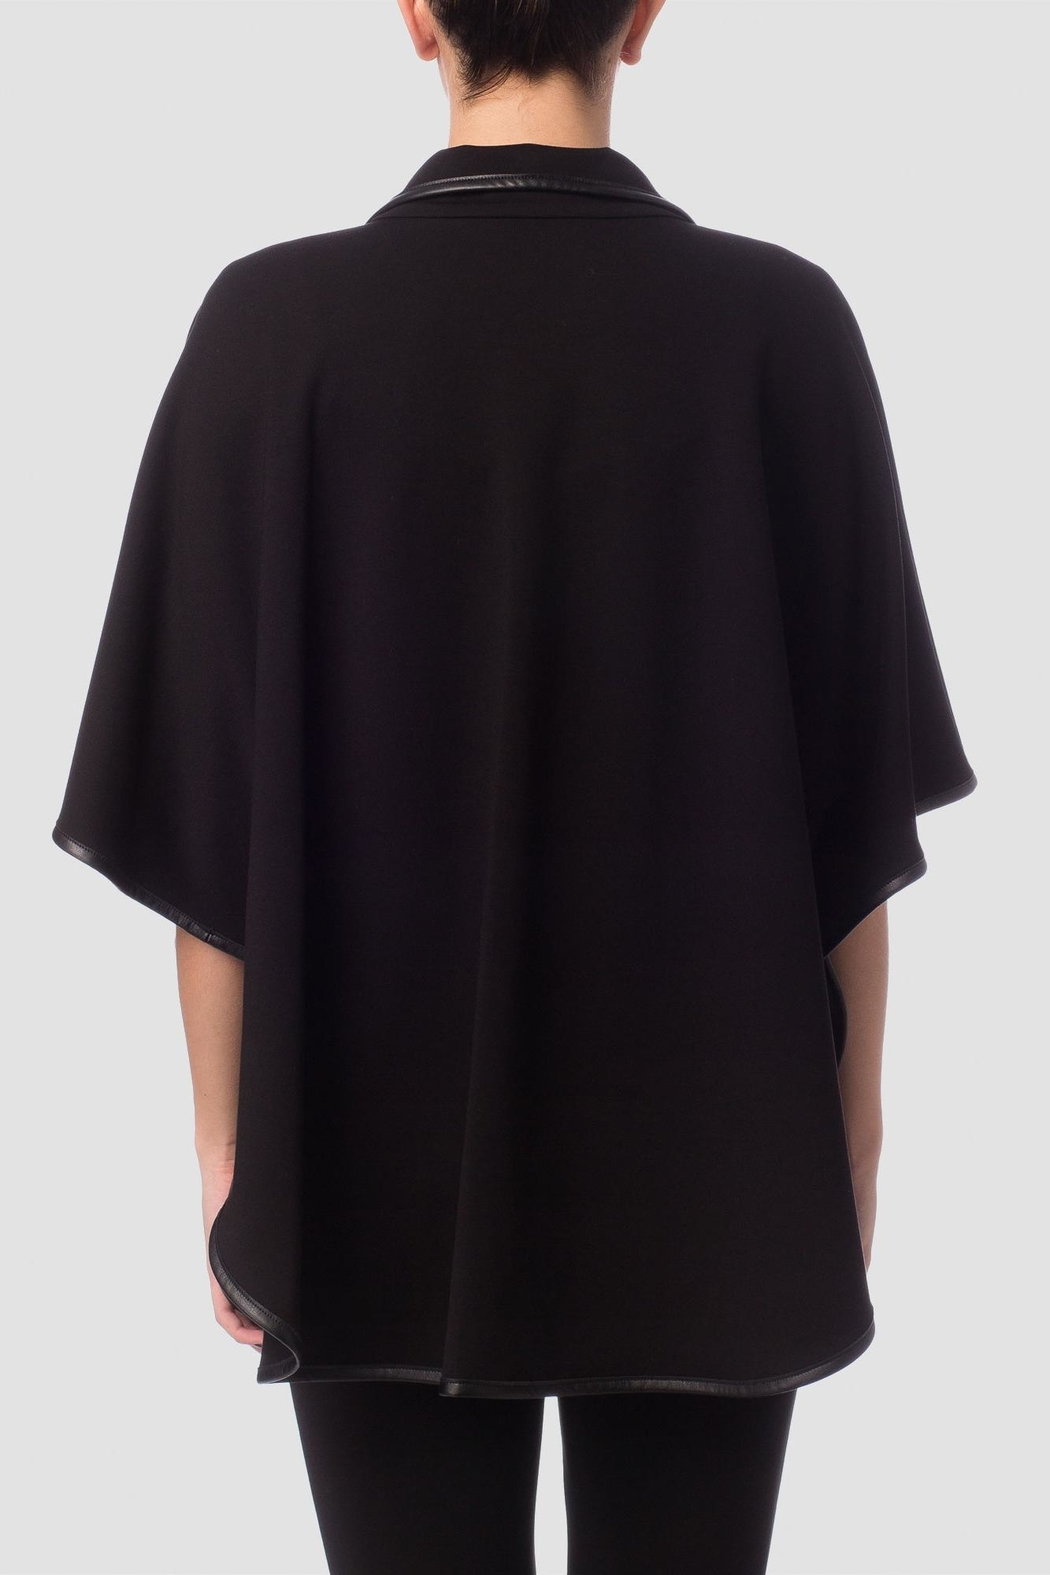 Joseph Ribkoff Black Cape Top - Front Full Image